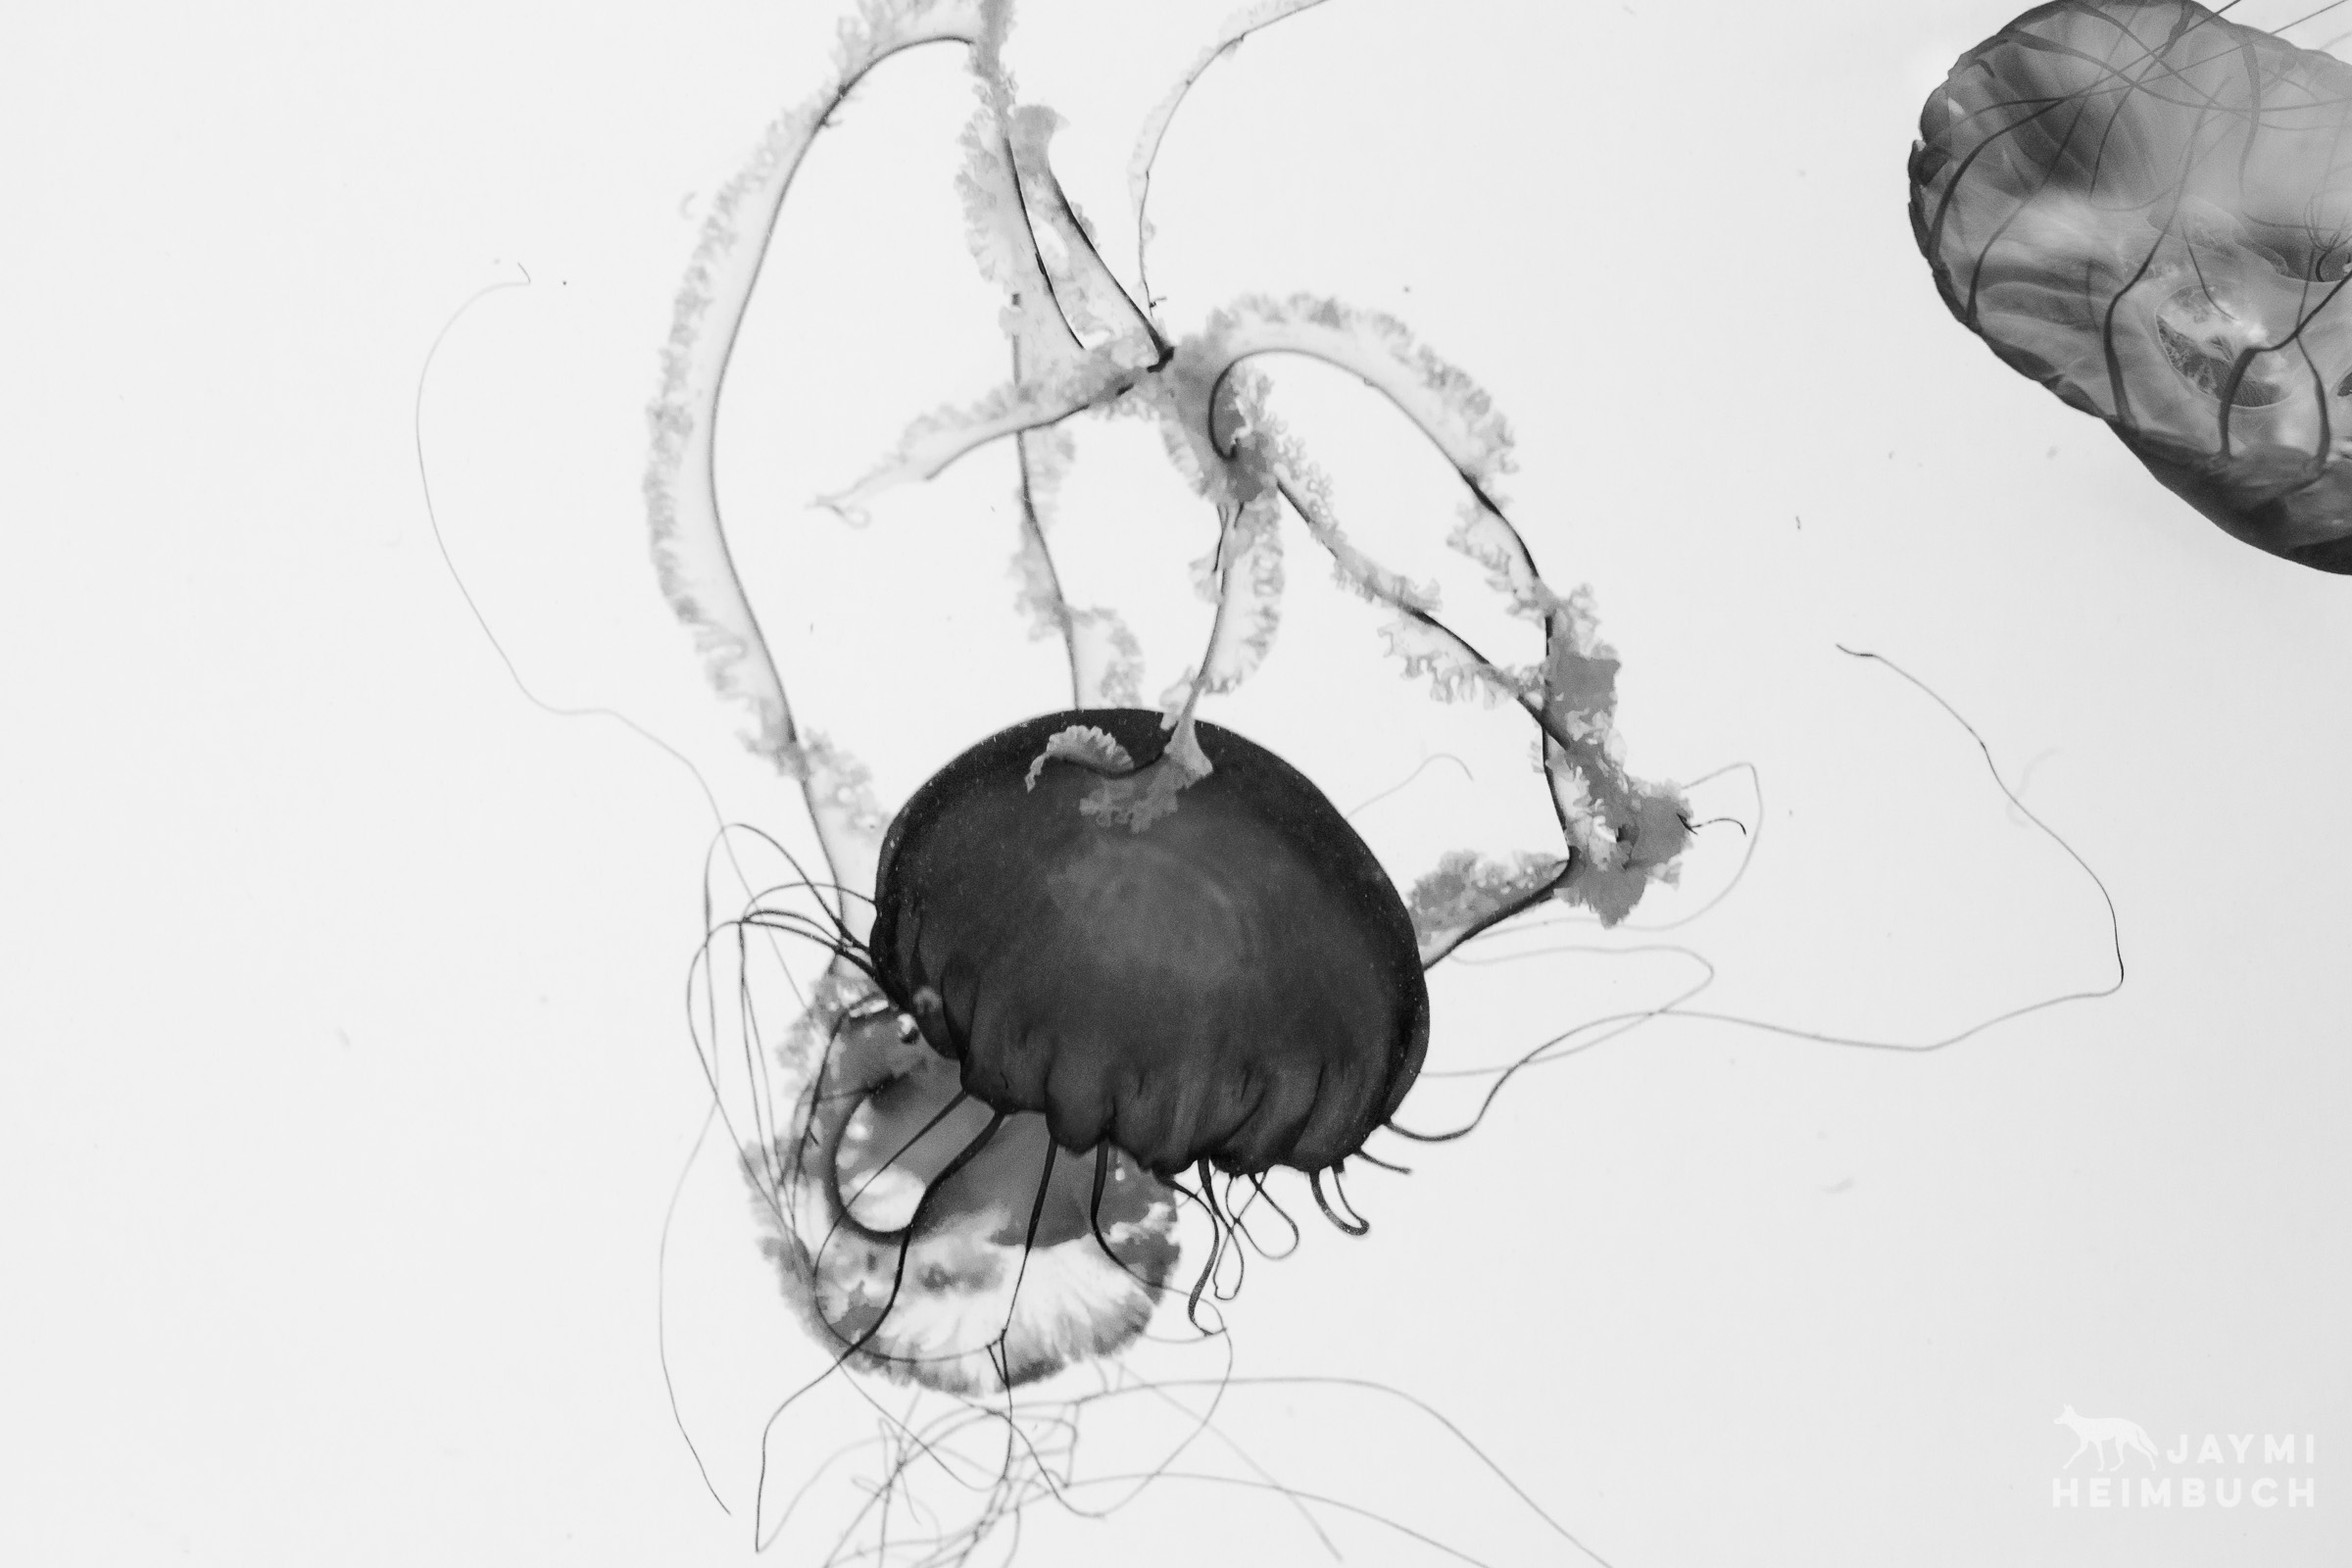 jellyfish in black and white